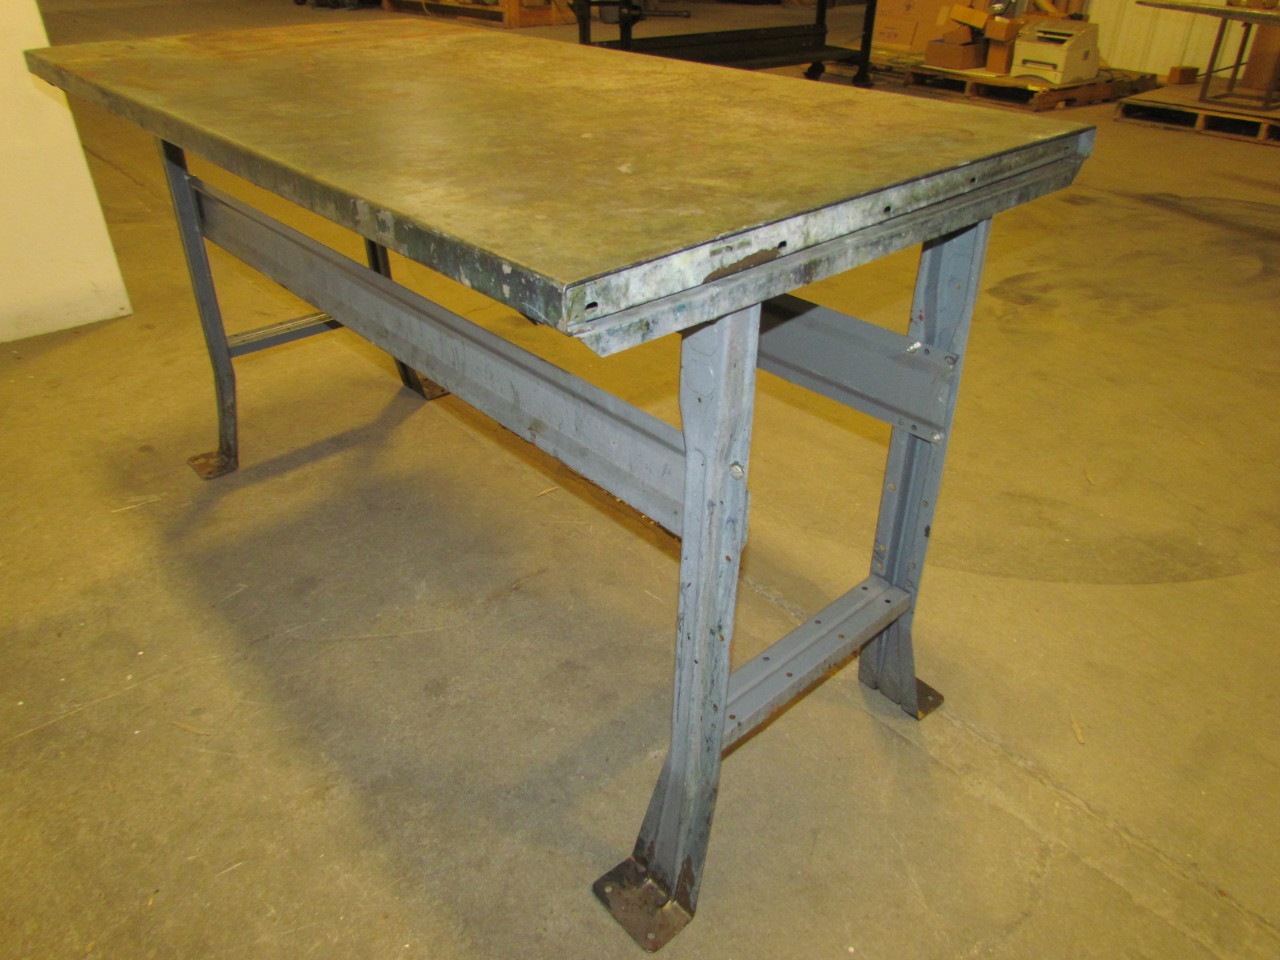 Metal Work Bench Legs 28 Images Edsal 33 In H X 2 In W X 30 In D Steel Adjustable X Bench